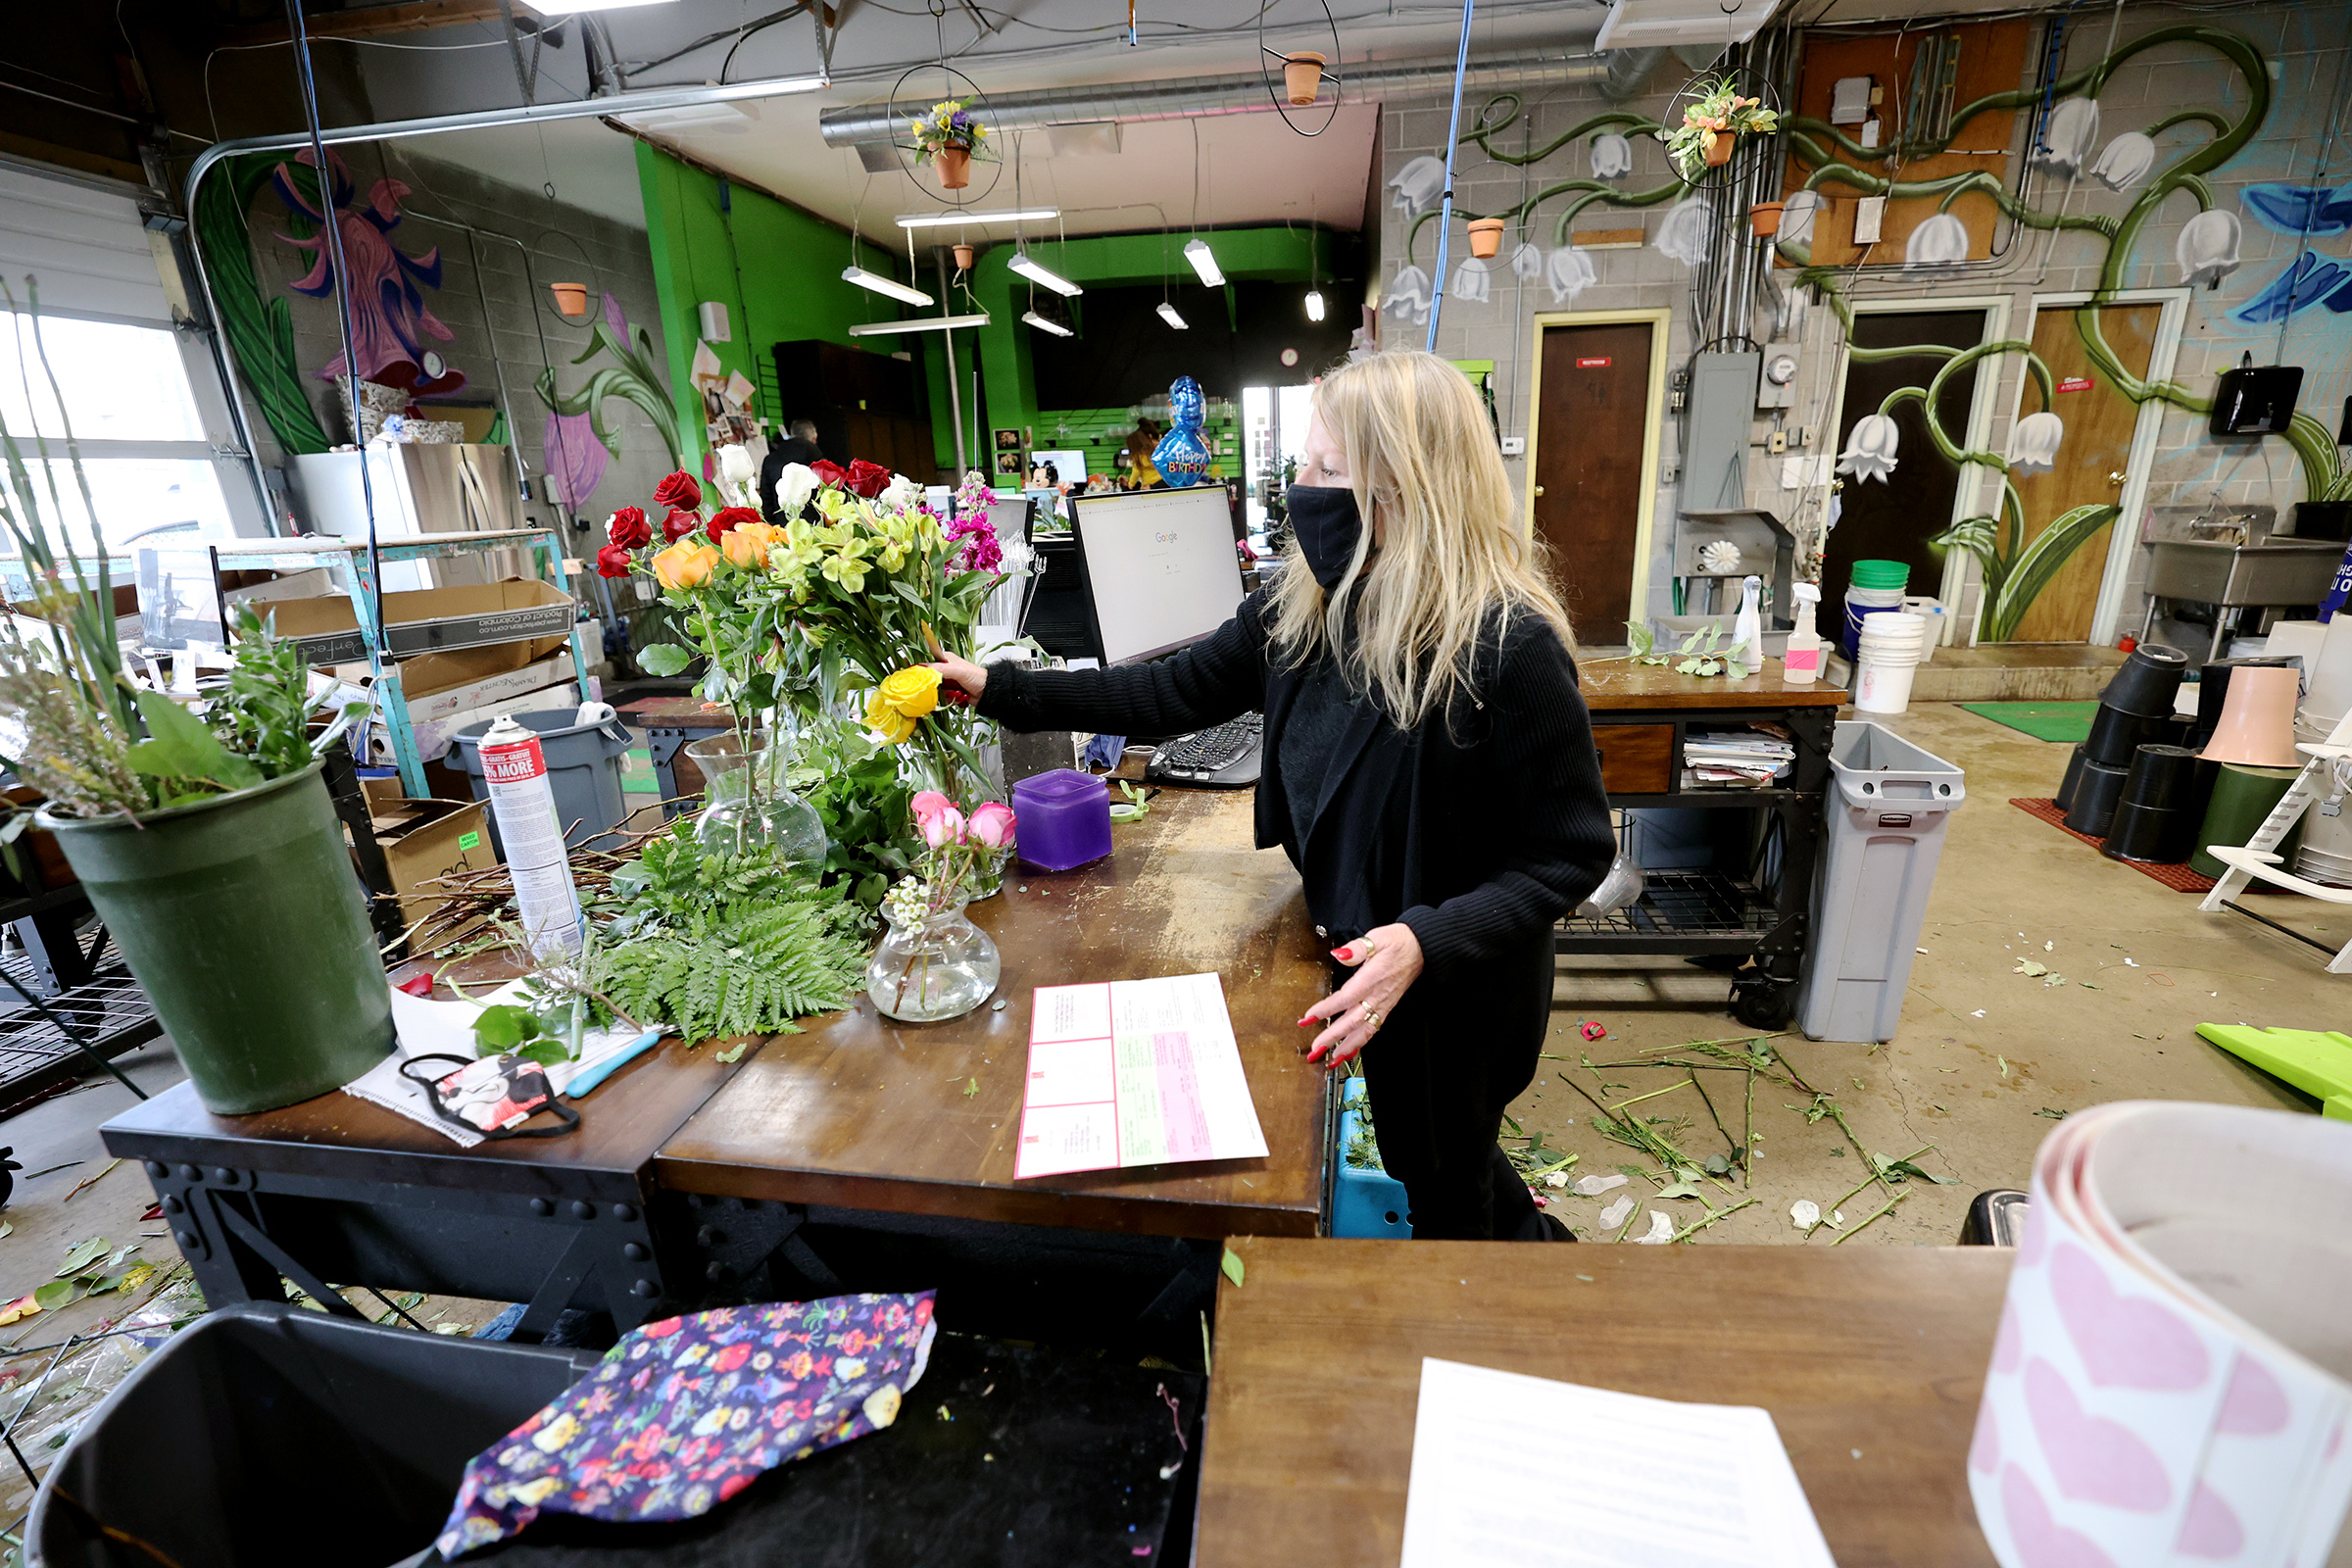 Marci Rasmussen, owner of Especially For You Your Downtown Florist, works on a floral arrangementat her shop in Salt Lake City on Tuesday, Jan. 12, 2021. Rasmussen applied for Paycheck Protection Program funding during the first round of stimulus last year to keep her business afloat and will also apply for the latest round of funding.